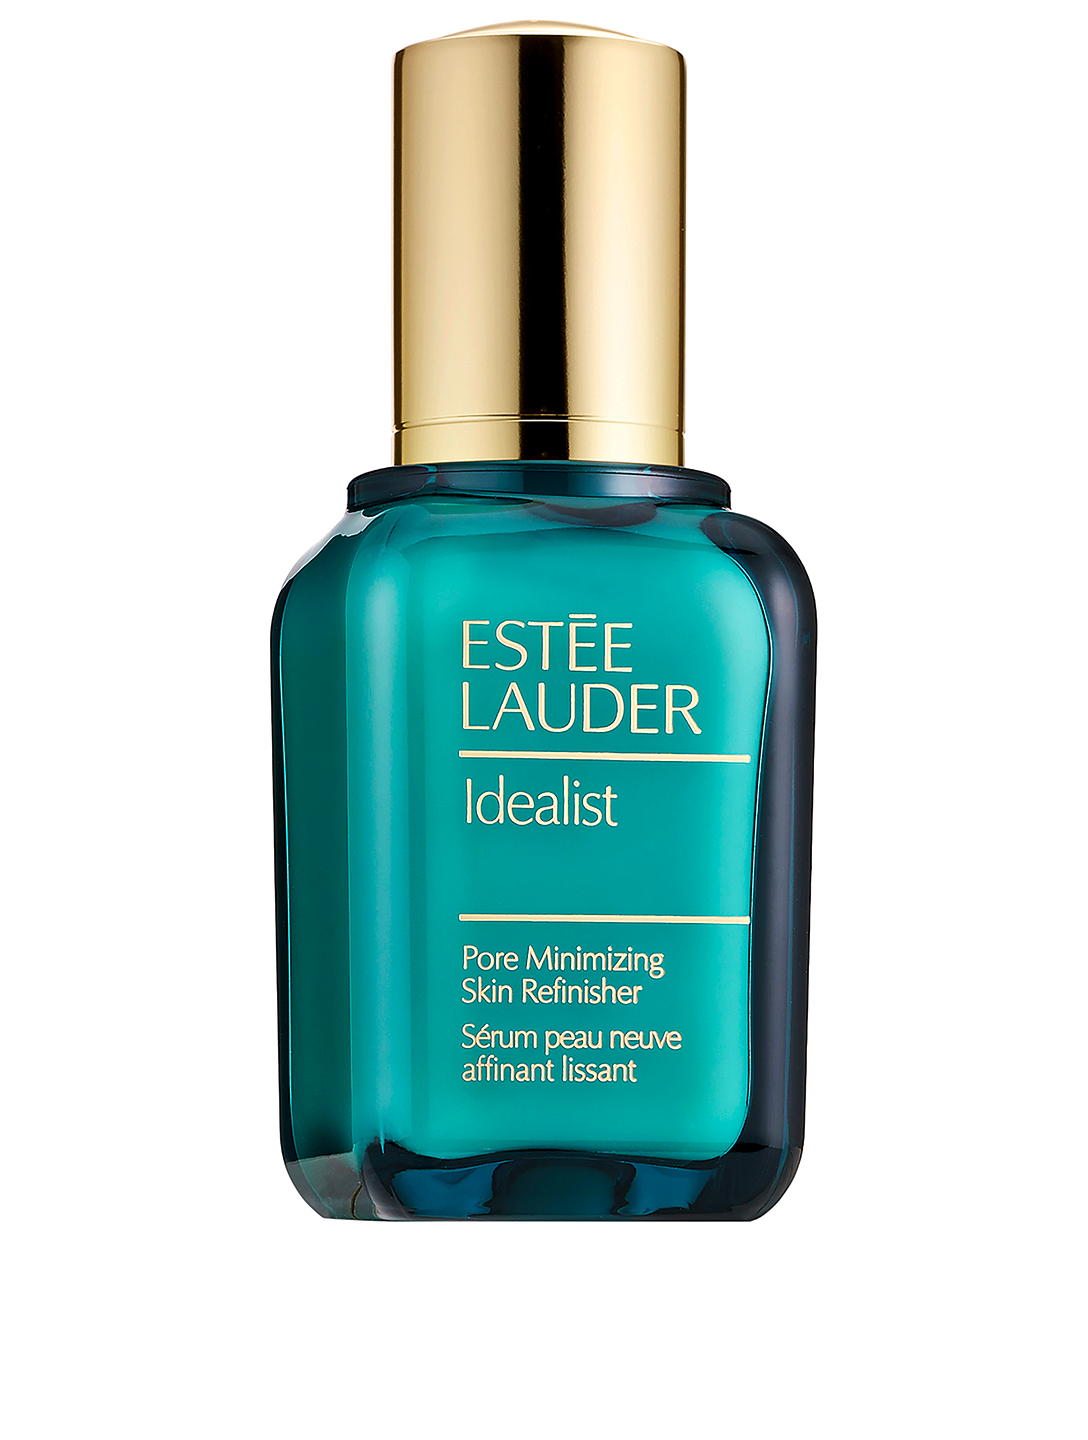 ESTÉE LAUDER Idealist Pore Minimizing Skin Refinisher Beauty